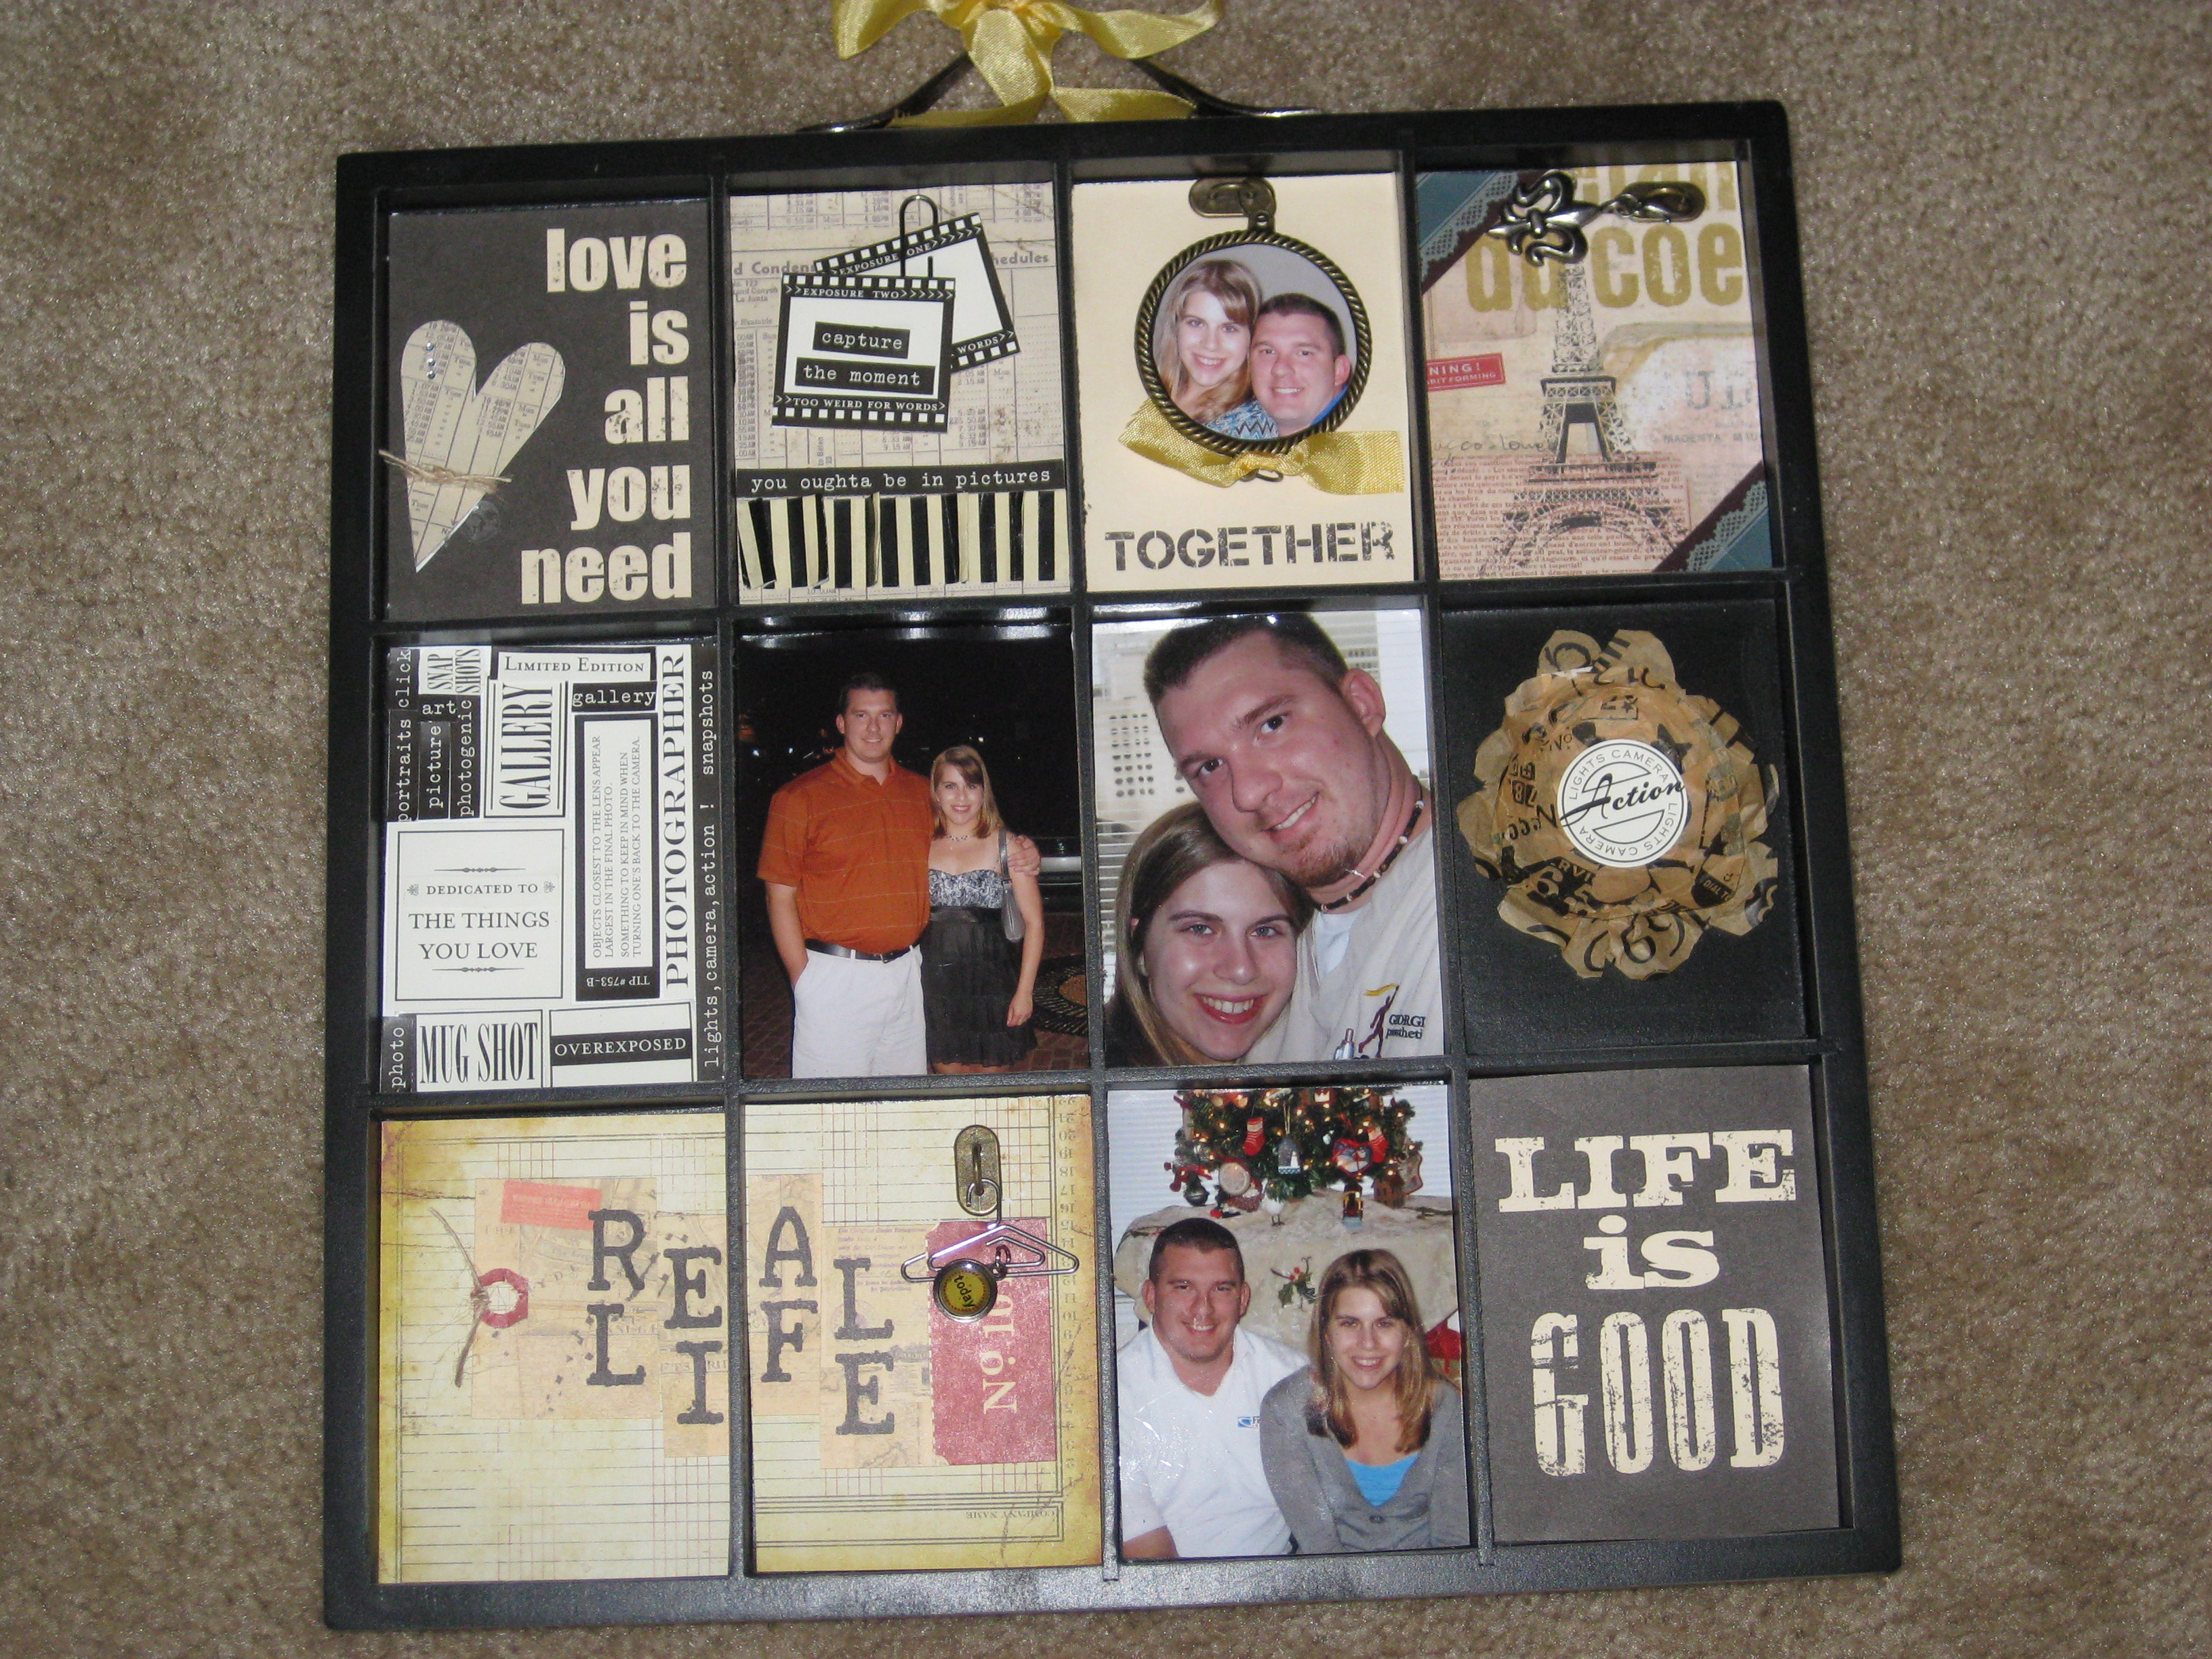 Scrapbook ideas words - I Made This Scrapbook Tray Project In 2 Hours It Was A Kit With Step By Step Instructions I Used Some Of My Own Ideas As Well